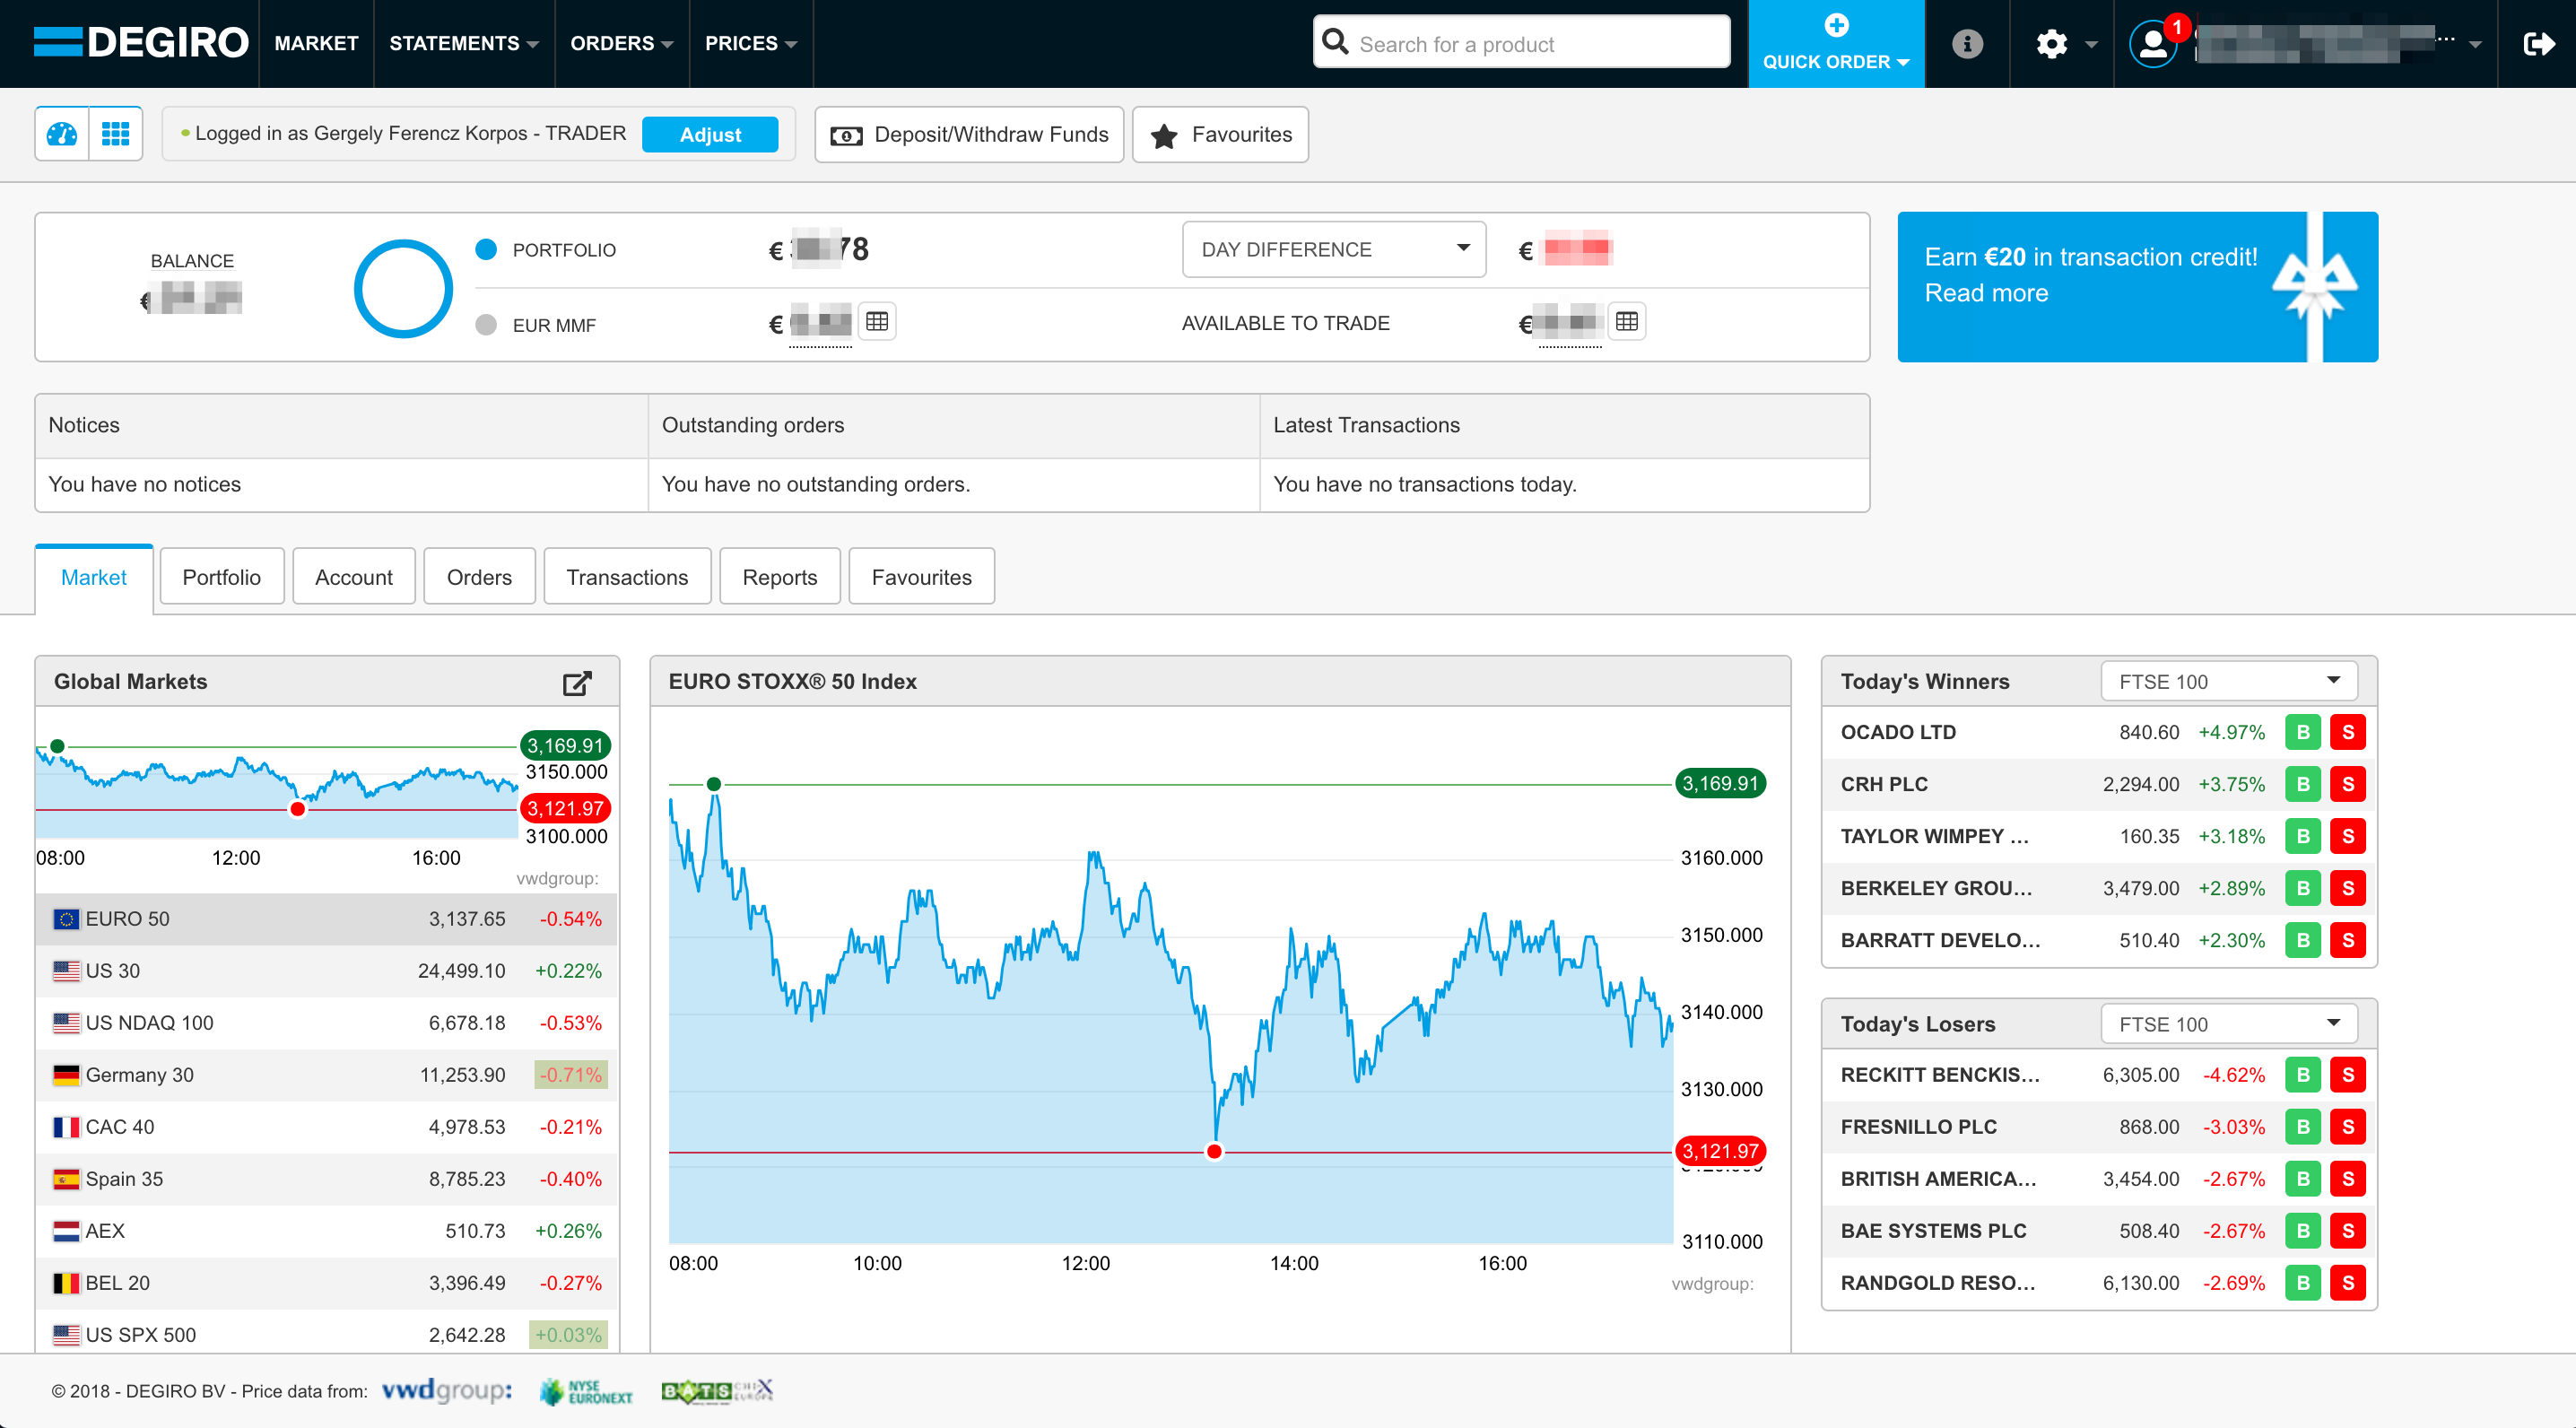 Web trading platform of DEGIRO, a Comdirect alternative